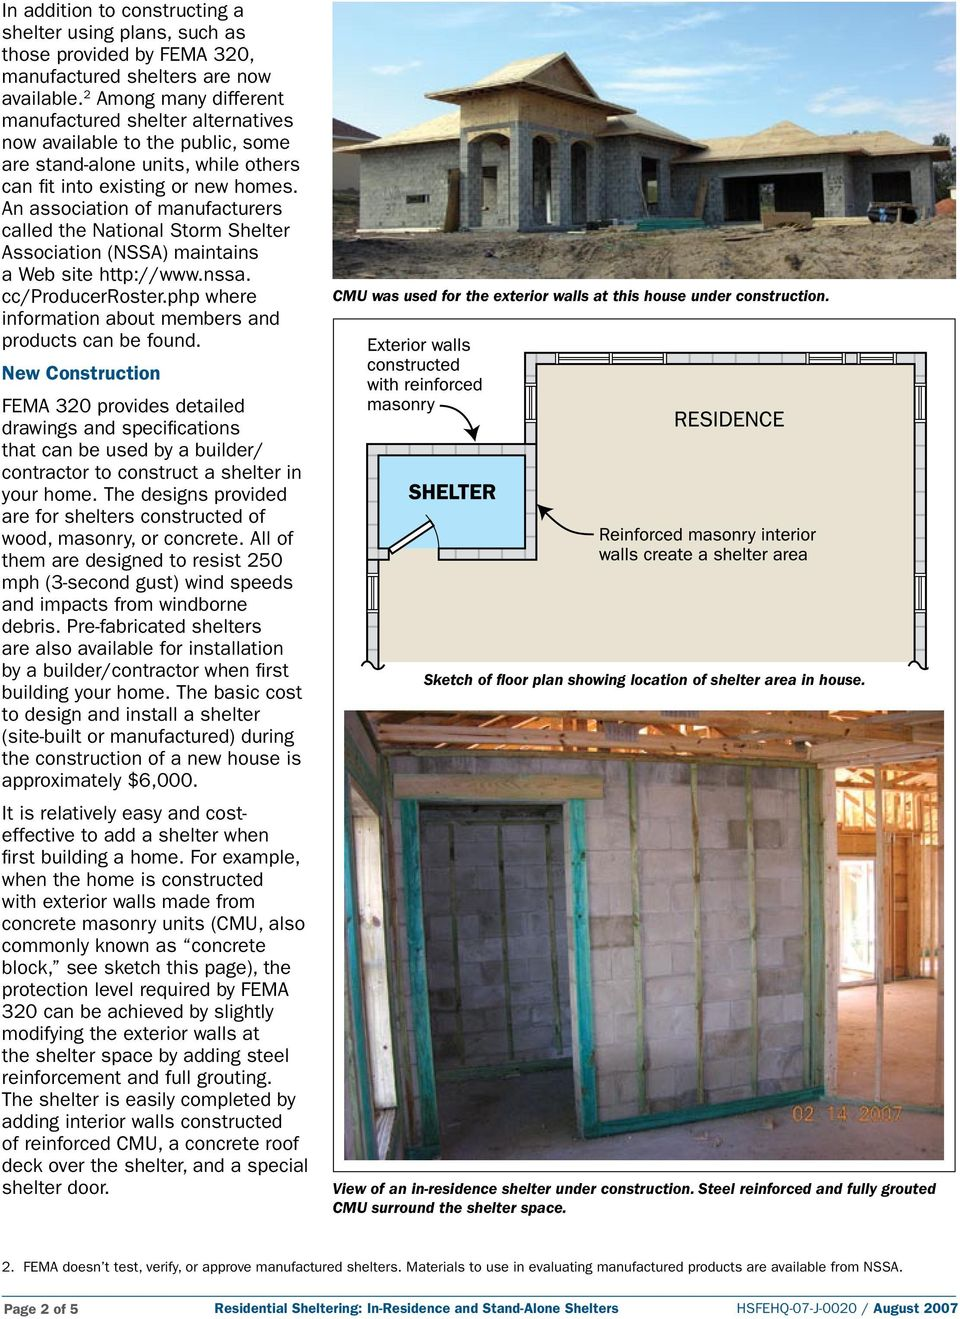 An association of manufacturers called the National Storm Shelter Association (NSSA) maintains a Web site http://www.nssa. cc/producerroster.